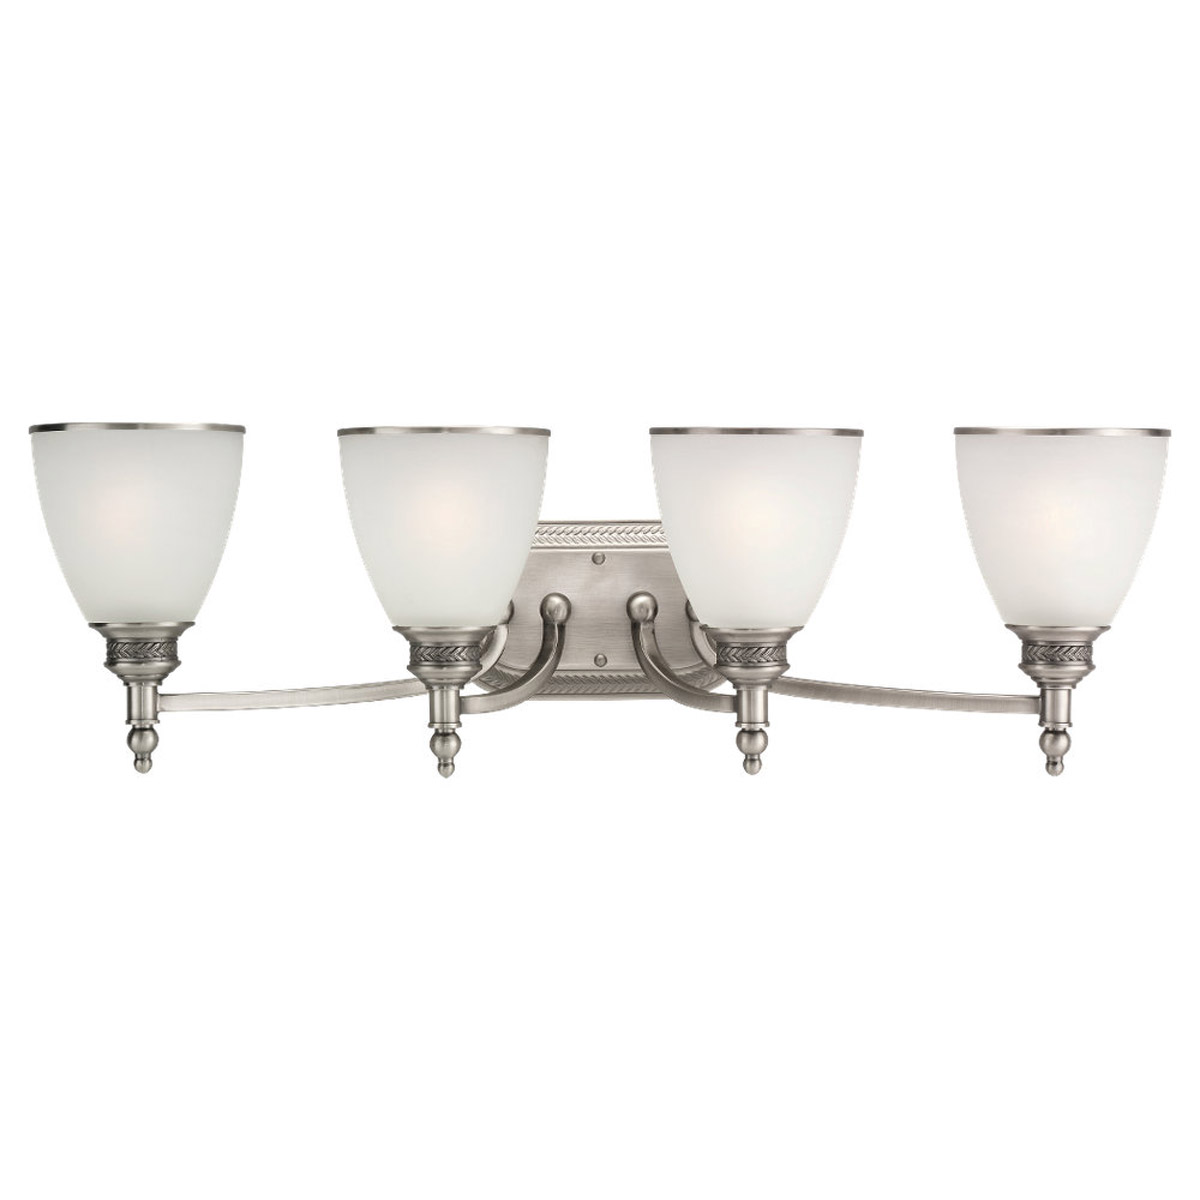 Sea Gull Lighting Laurel Leaf 4 Light Bath Vanity in Antique Brushed Nickel 44352-965